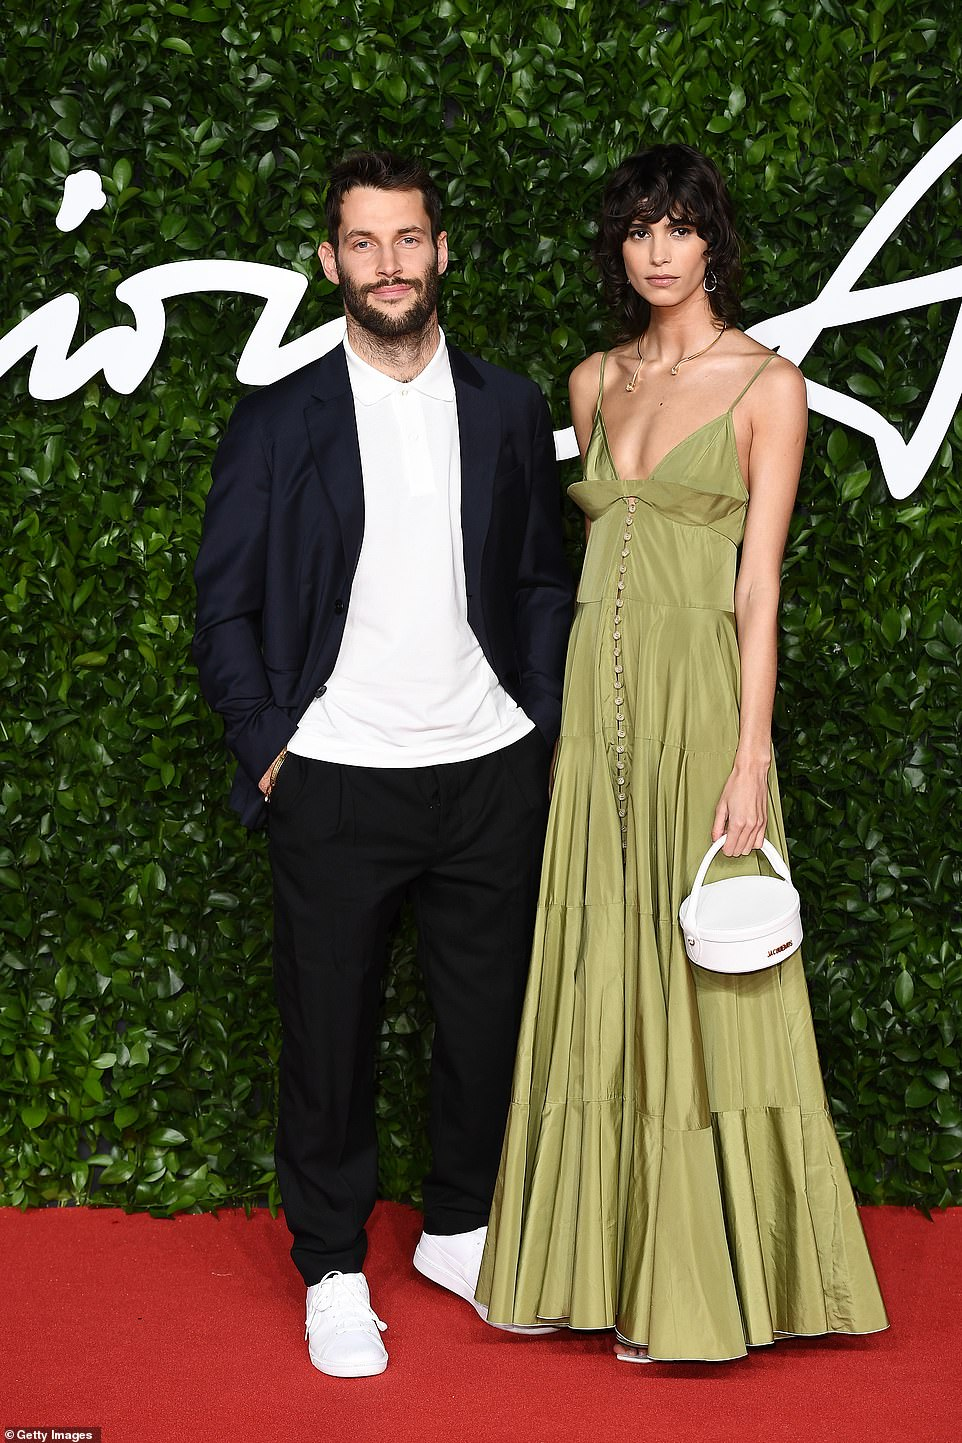 Fashionable duo: Simon Porte Jacquemus and Mica Arganaraz posed together on the carpet